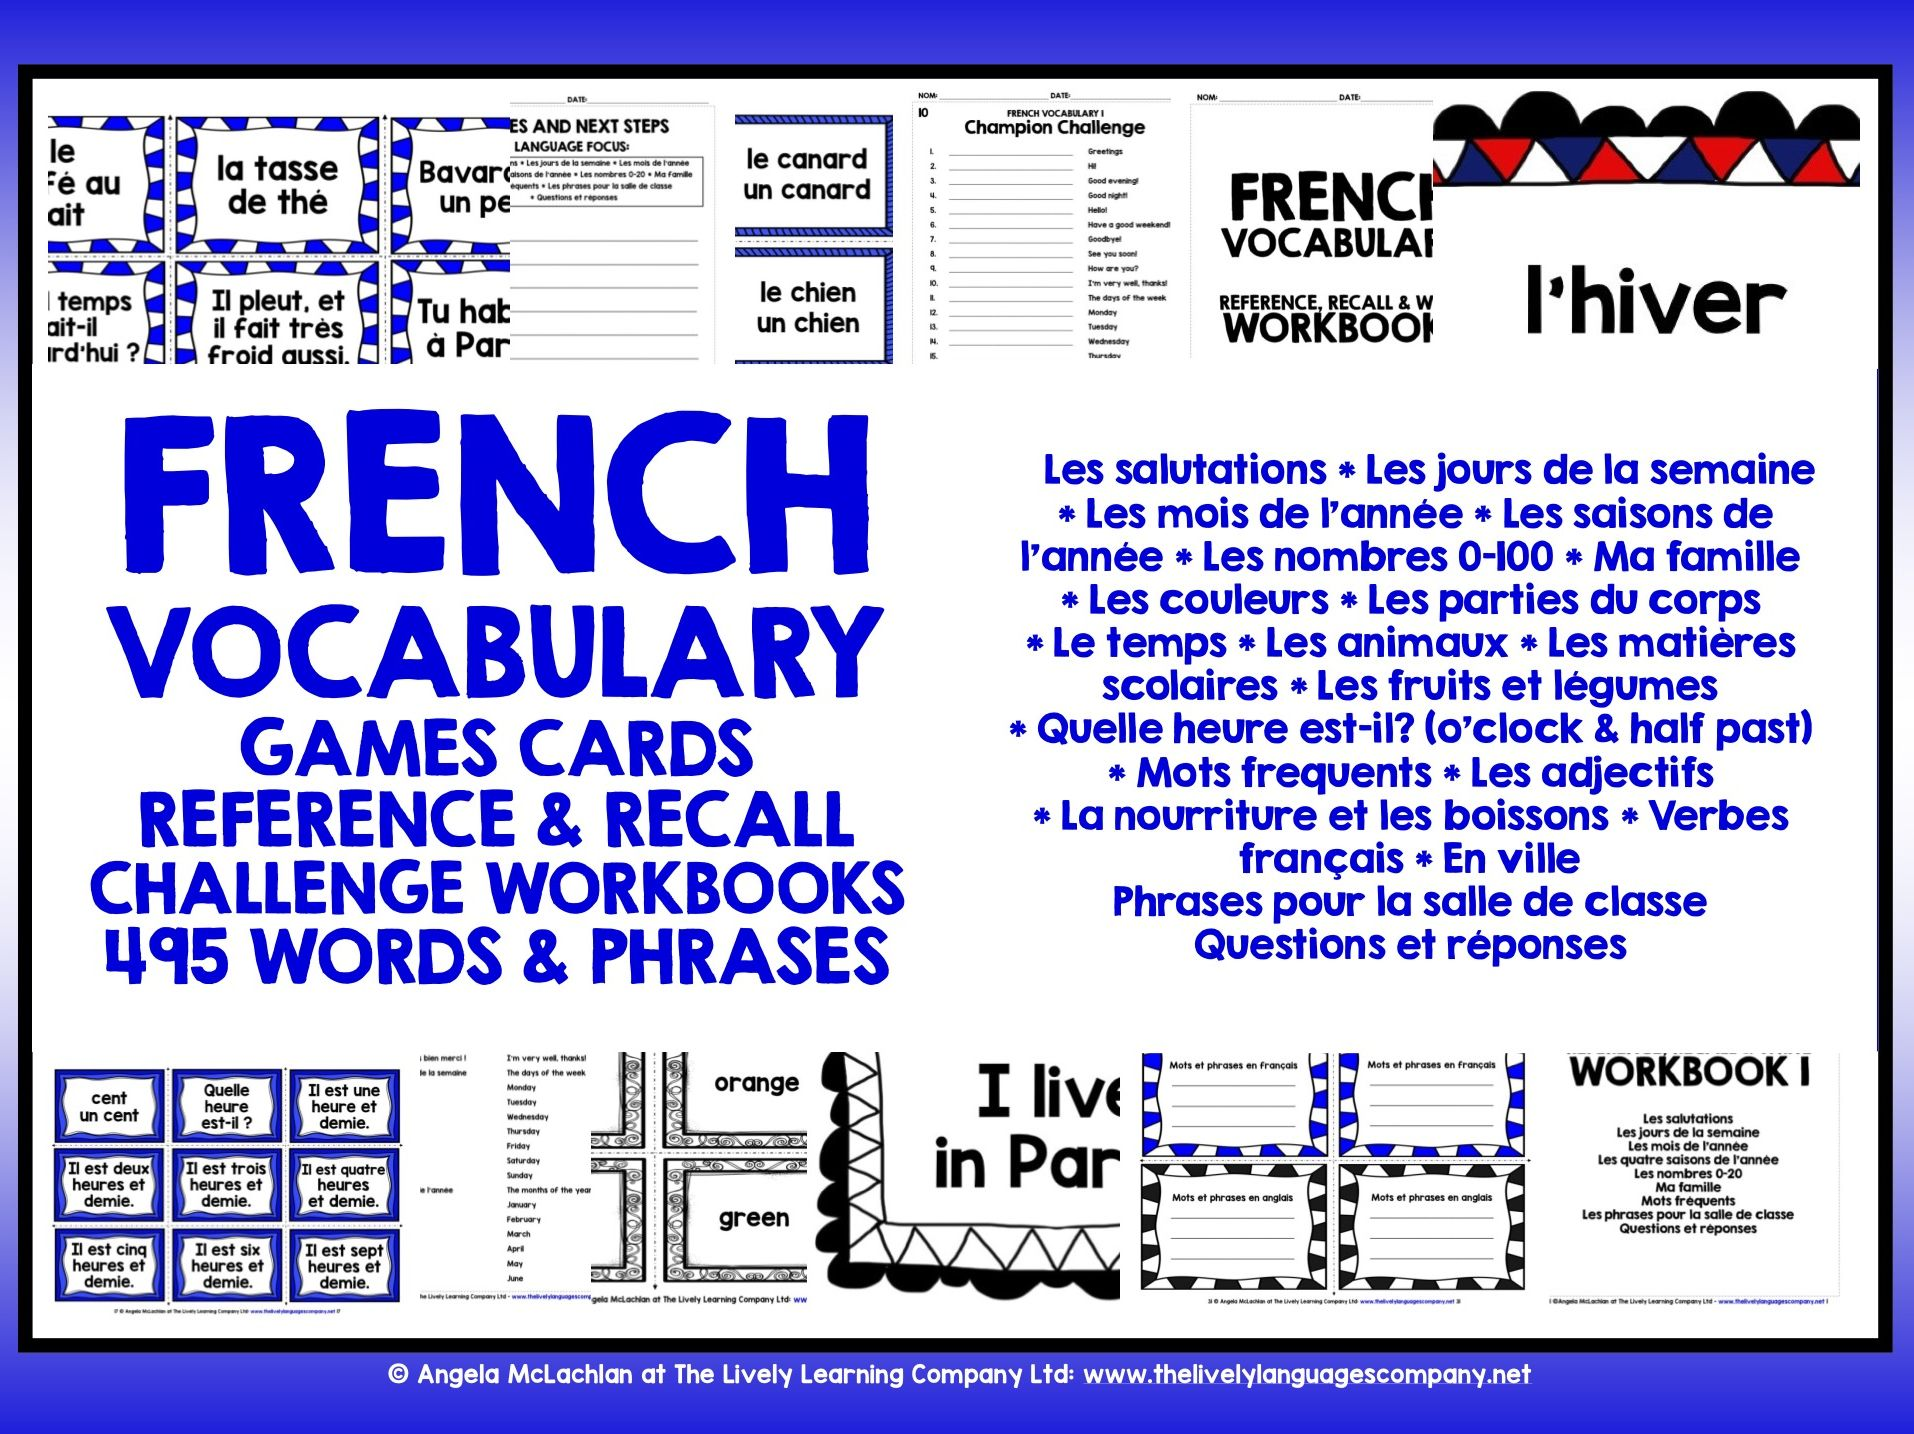 FRENCH VOCABULARY CARDS WITH REFERENCE & RECALL WORKBOOKS